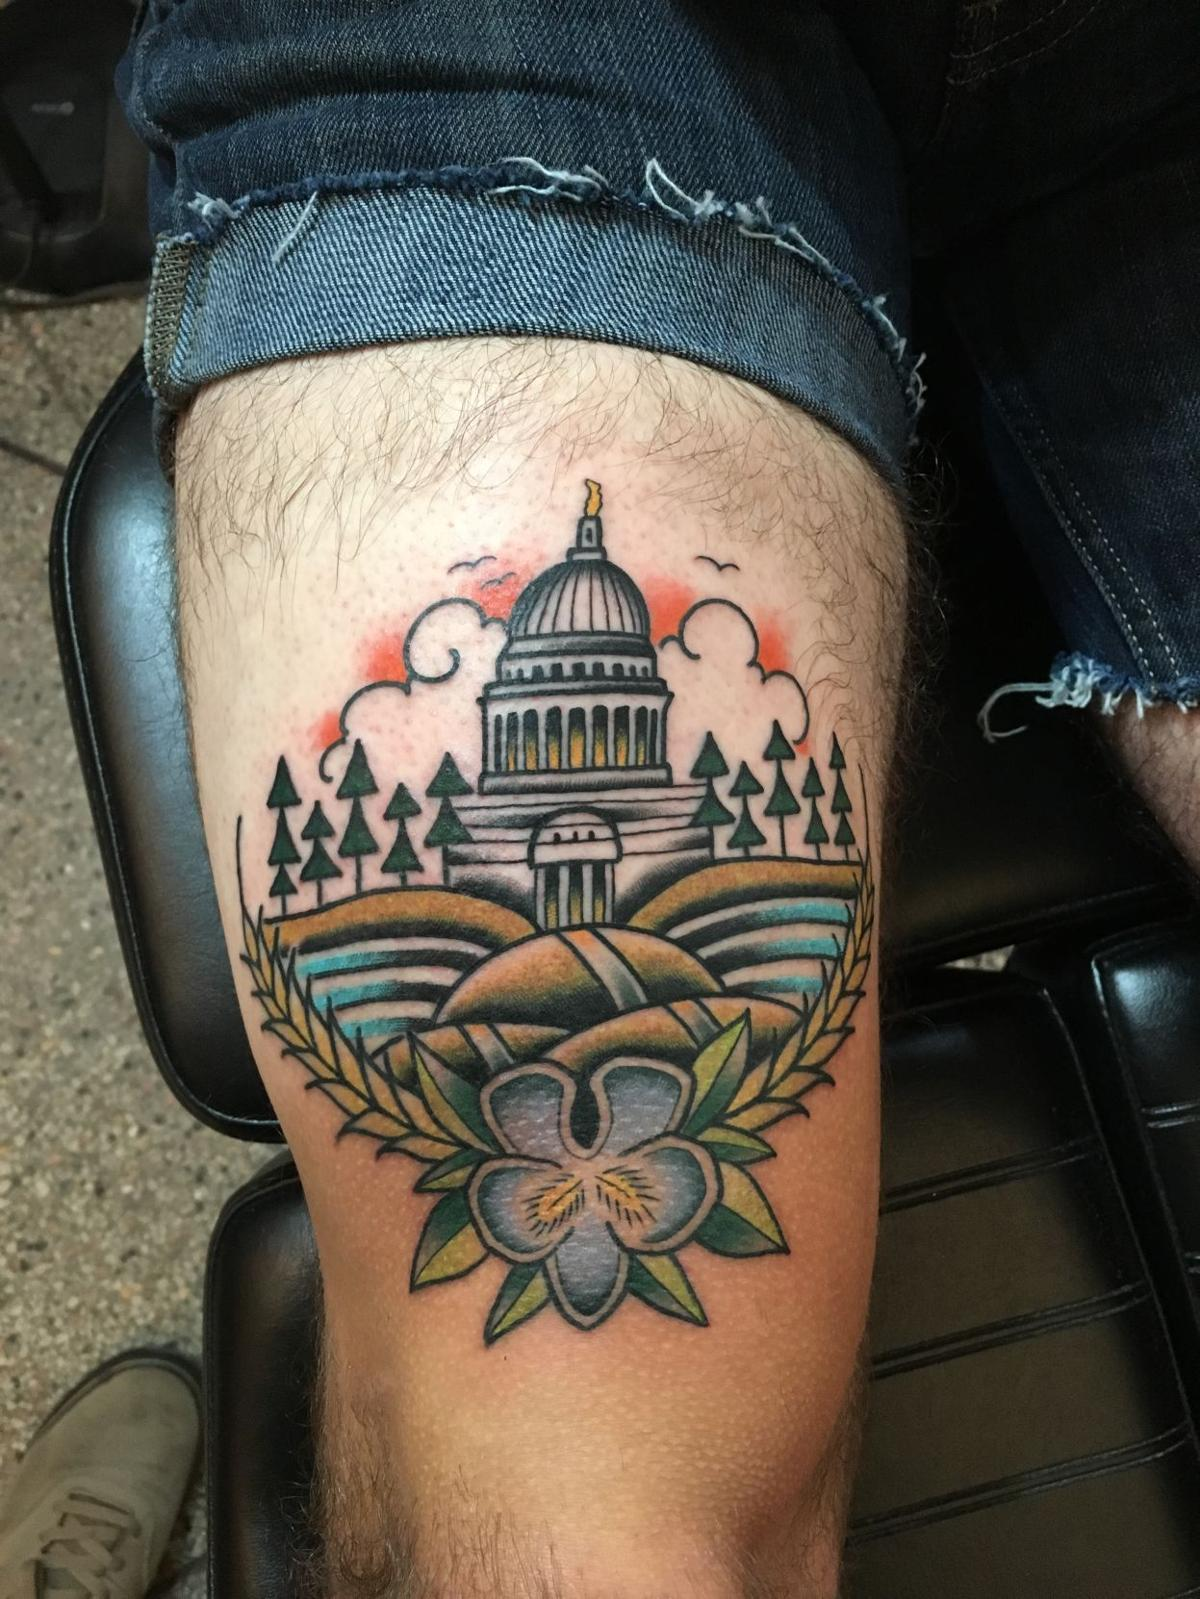 Tattoo Part 2 Even More Wisconsin Tattoos Submitted By Our Readers